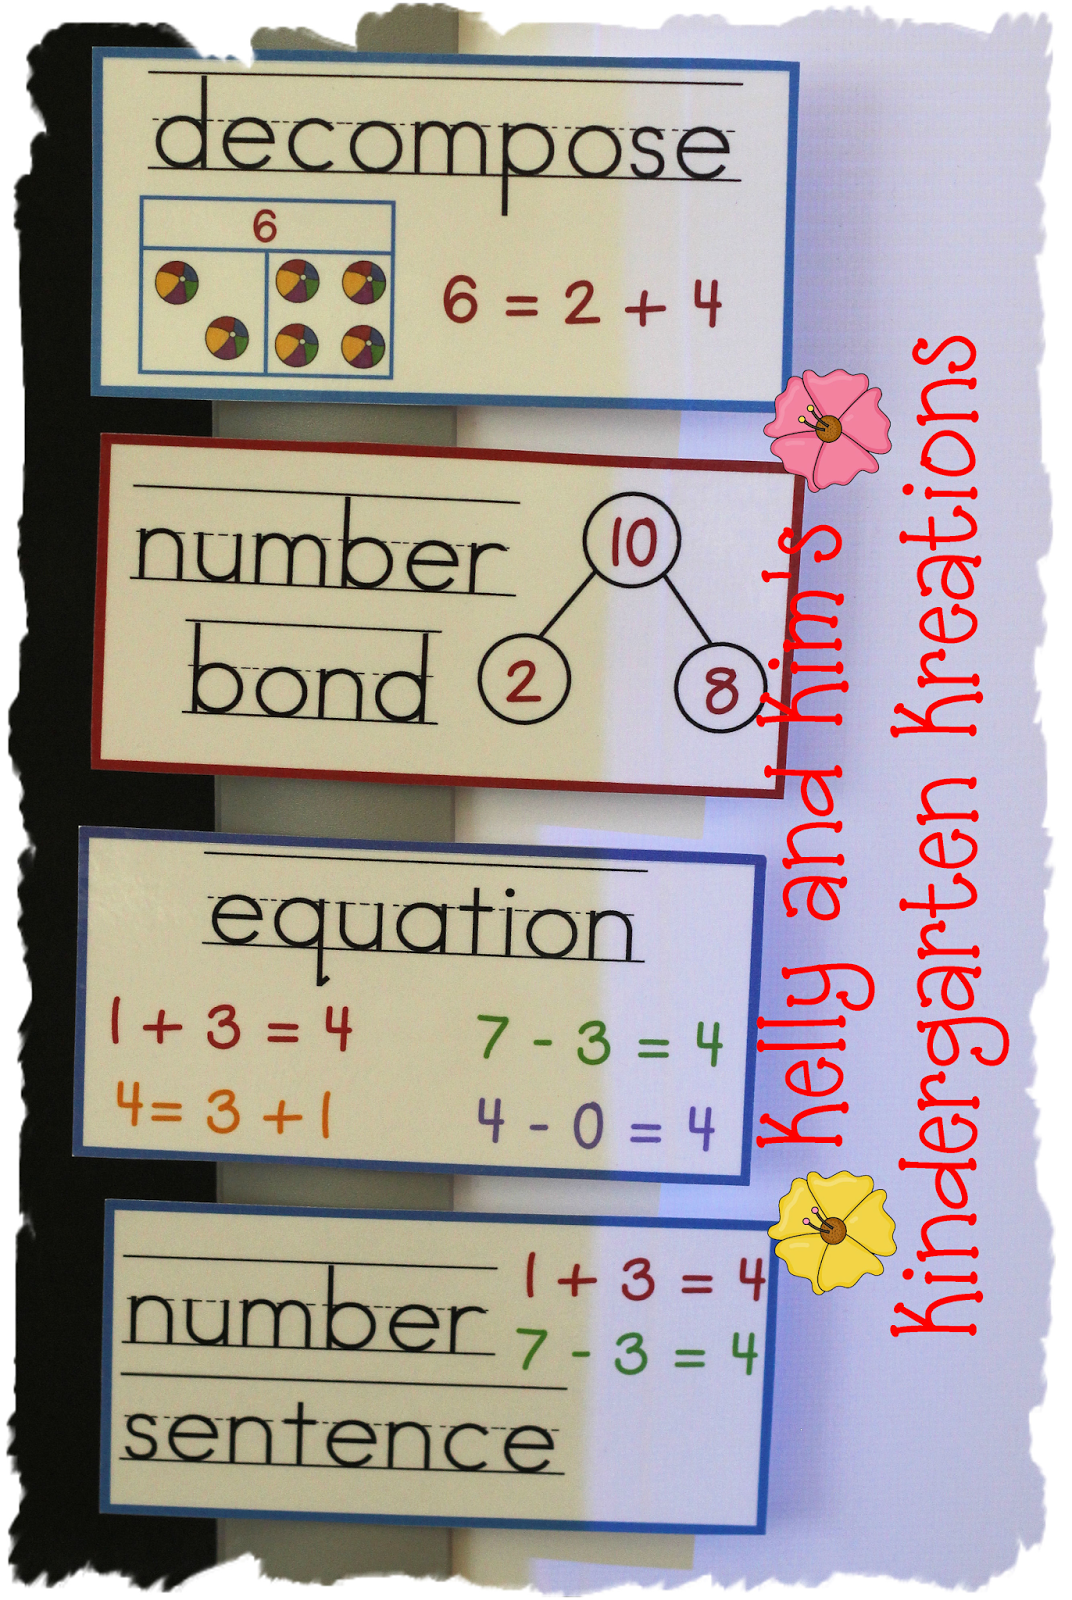 Math Talk Math Word Wall For Important Math Vocabulary And Visuals For Young Learners